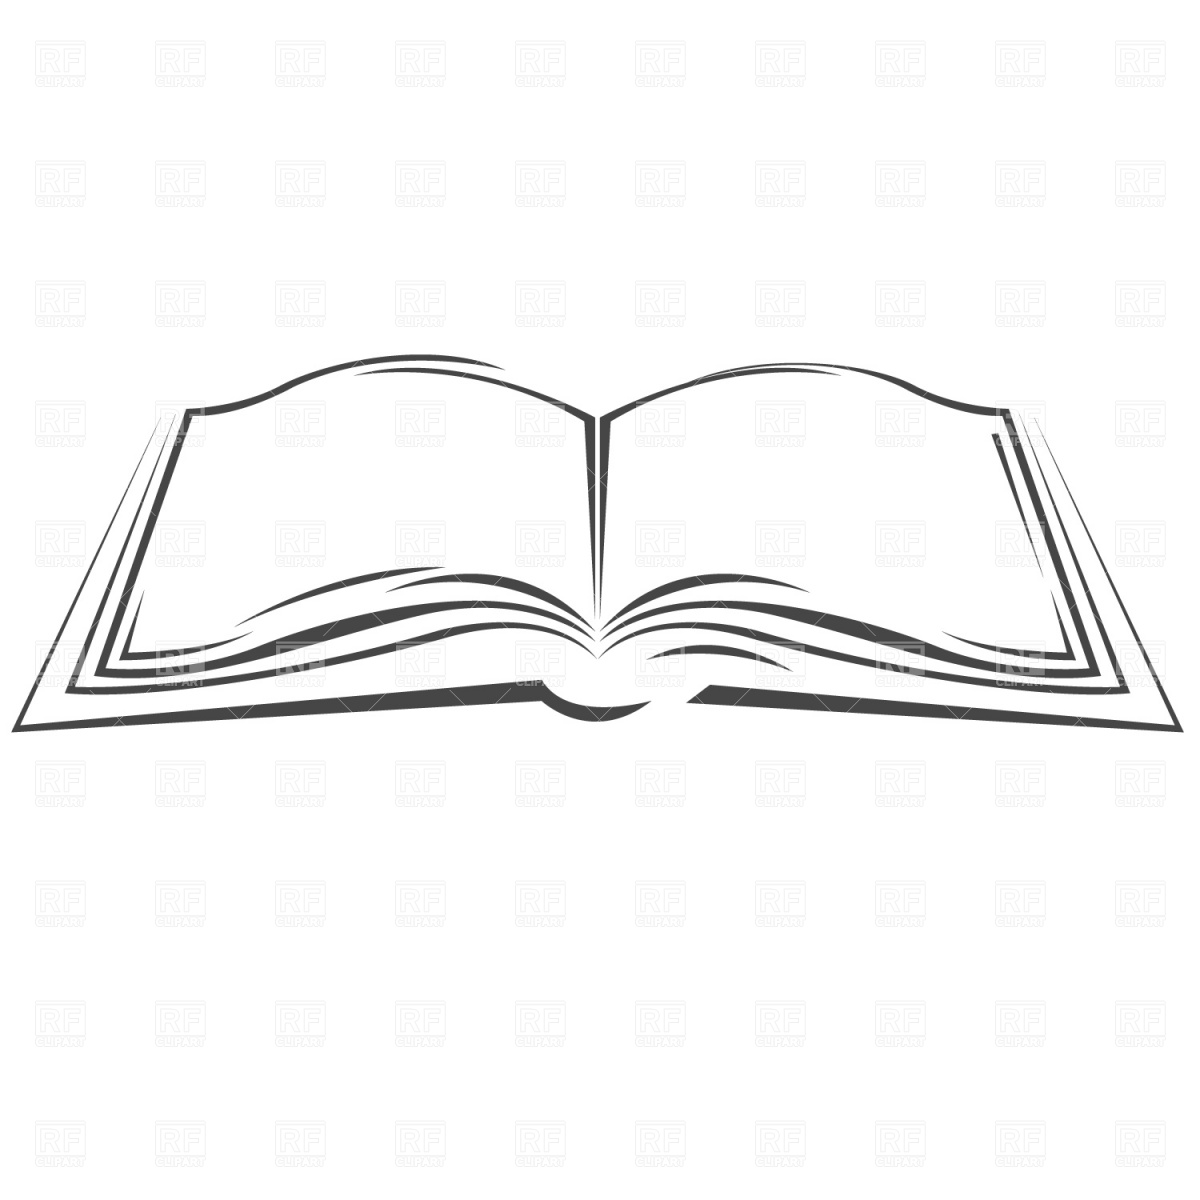 Book Images Clip Art Symbolic Open Book Objects Download Royalty